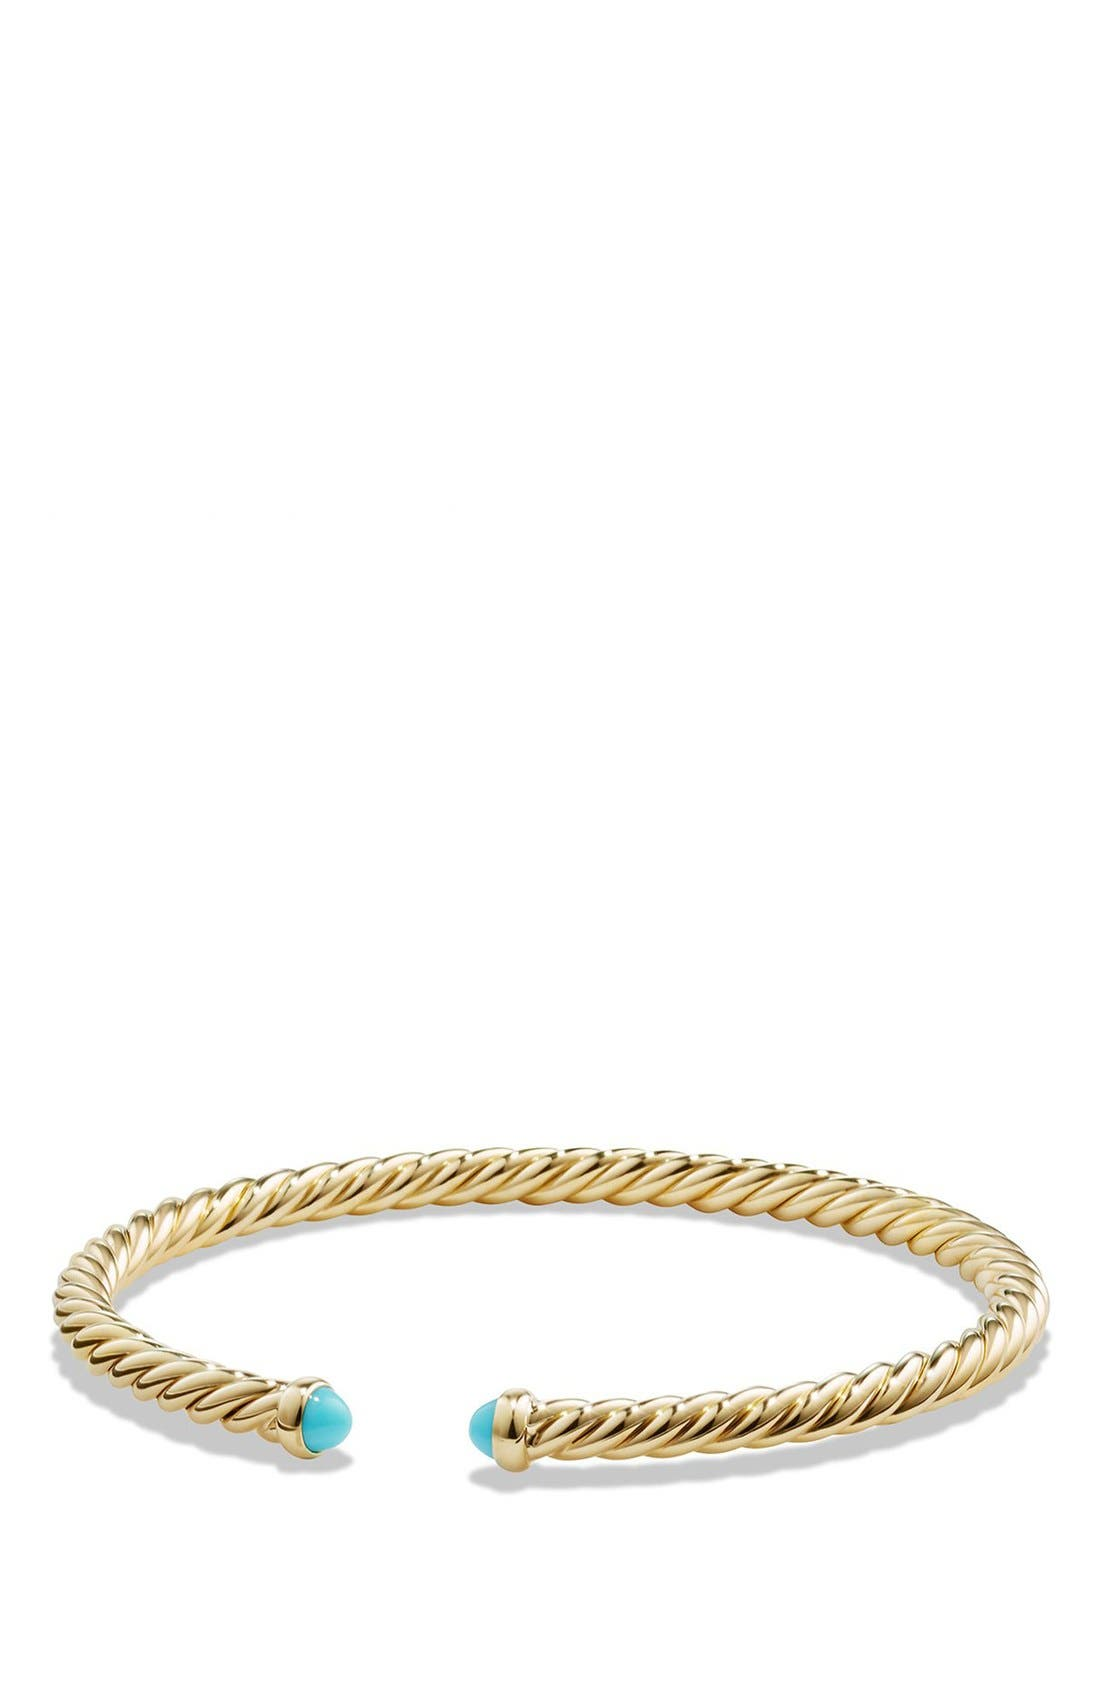 David Yurman 'Cable Classics' Cable Spira Bracelet in 18K Gold